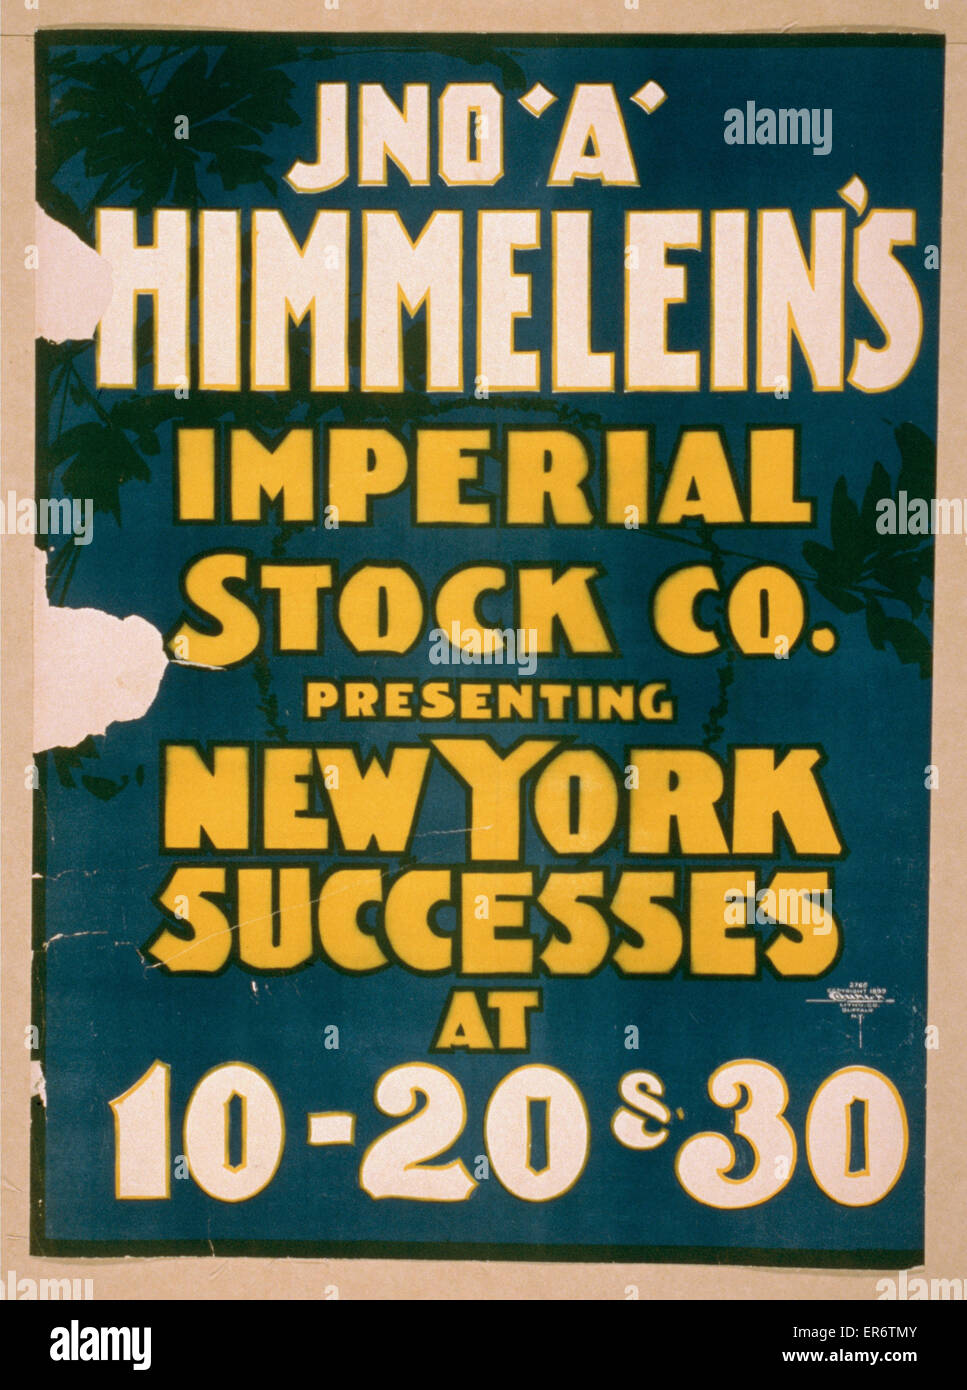 Jno. A. Himmelein's Imperial Stock Co. presenting New York successes at 10-20 & 30. Date c1899. - Stock Image